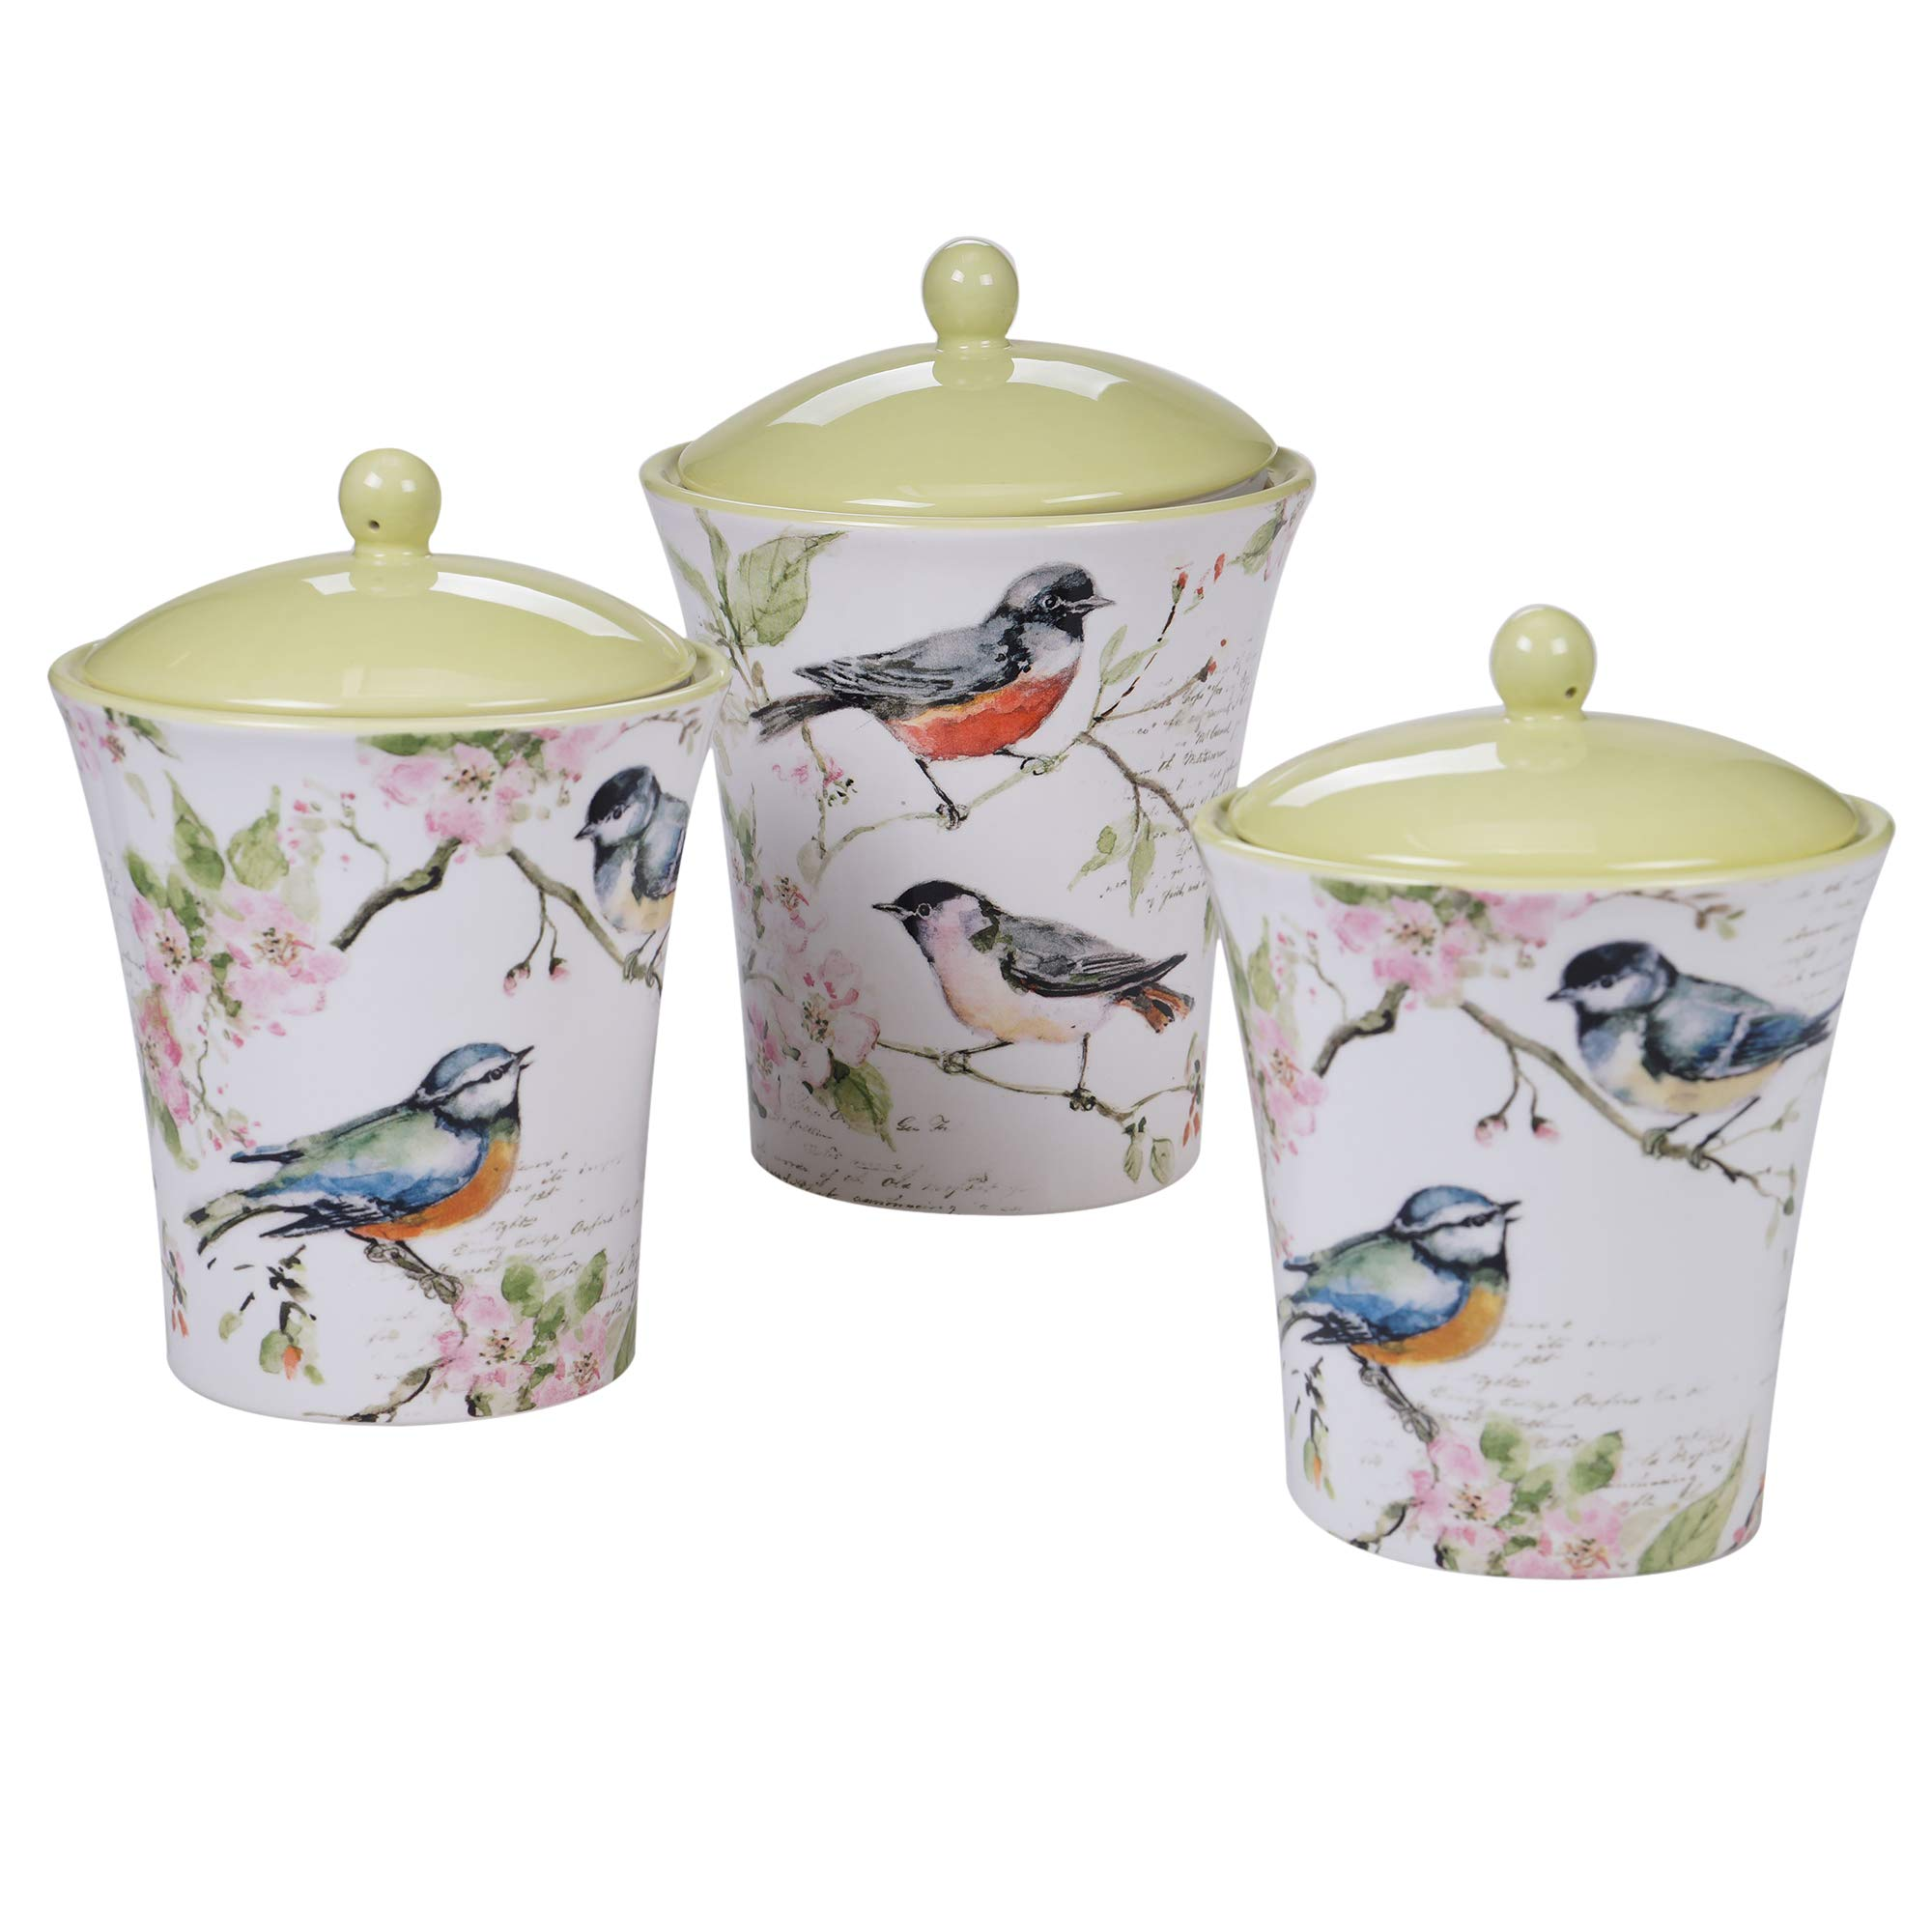 Certified International 26638 Spring Meadows 3pc Canister Set Servware, Serving Acessories Multicolred